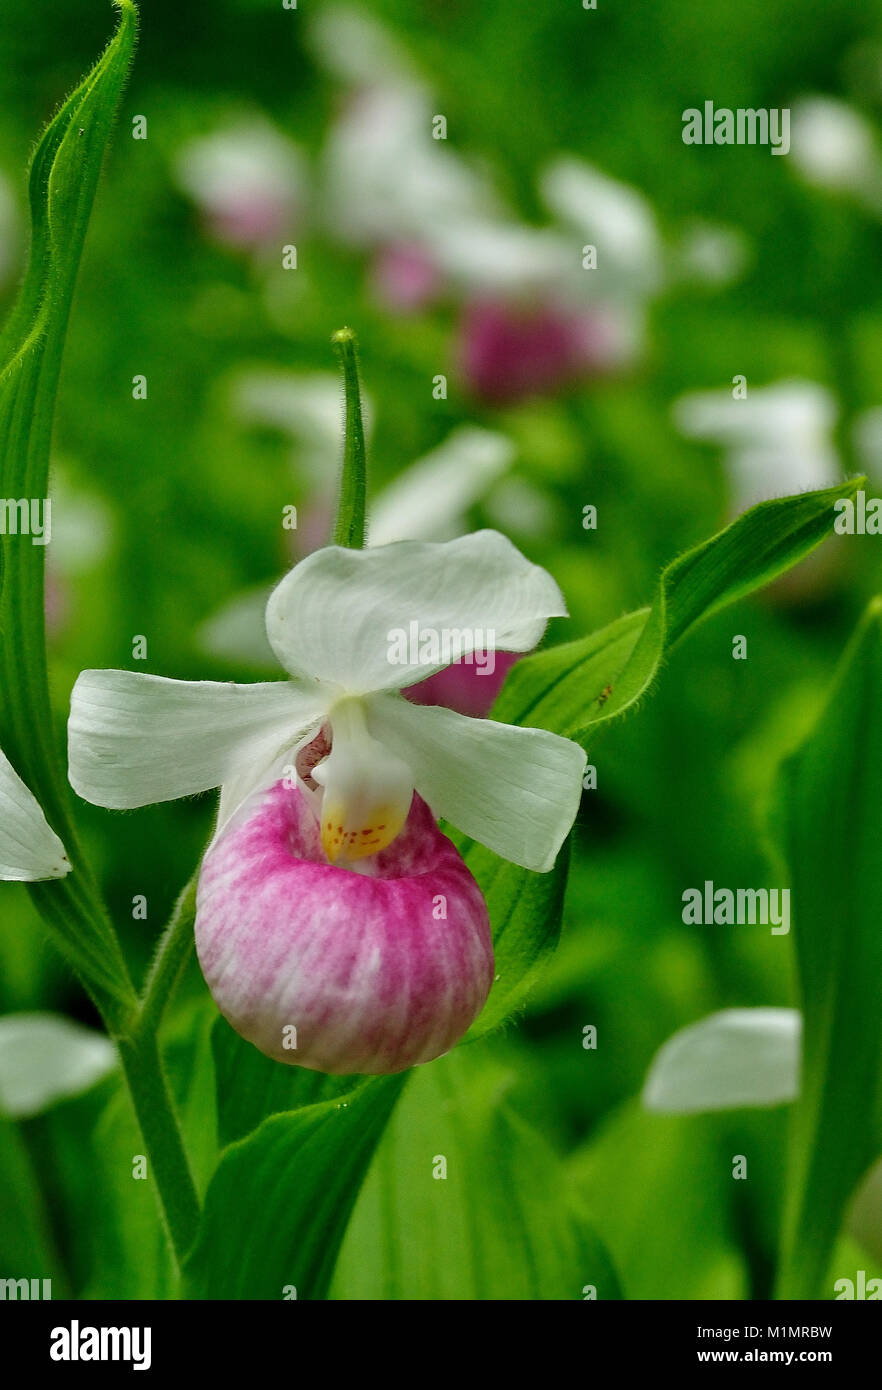 Showy Orchids on display in an open meadow - Stock Image